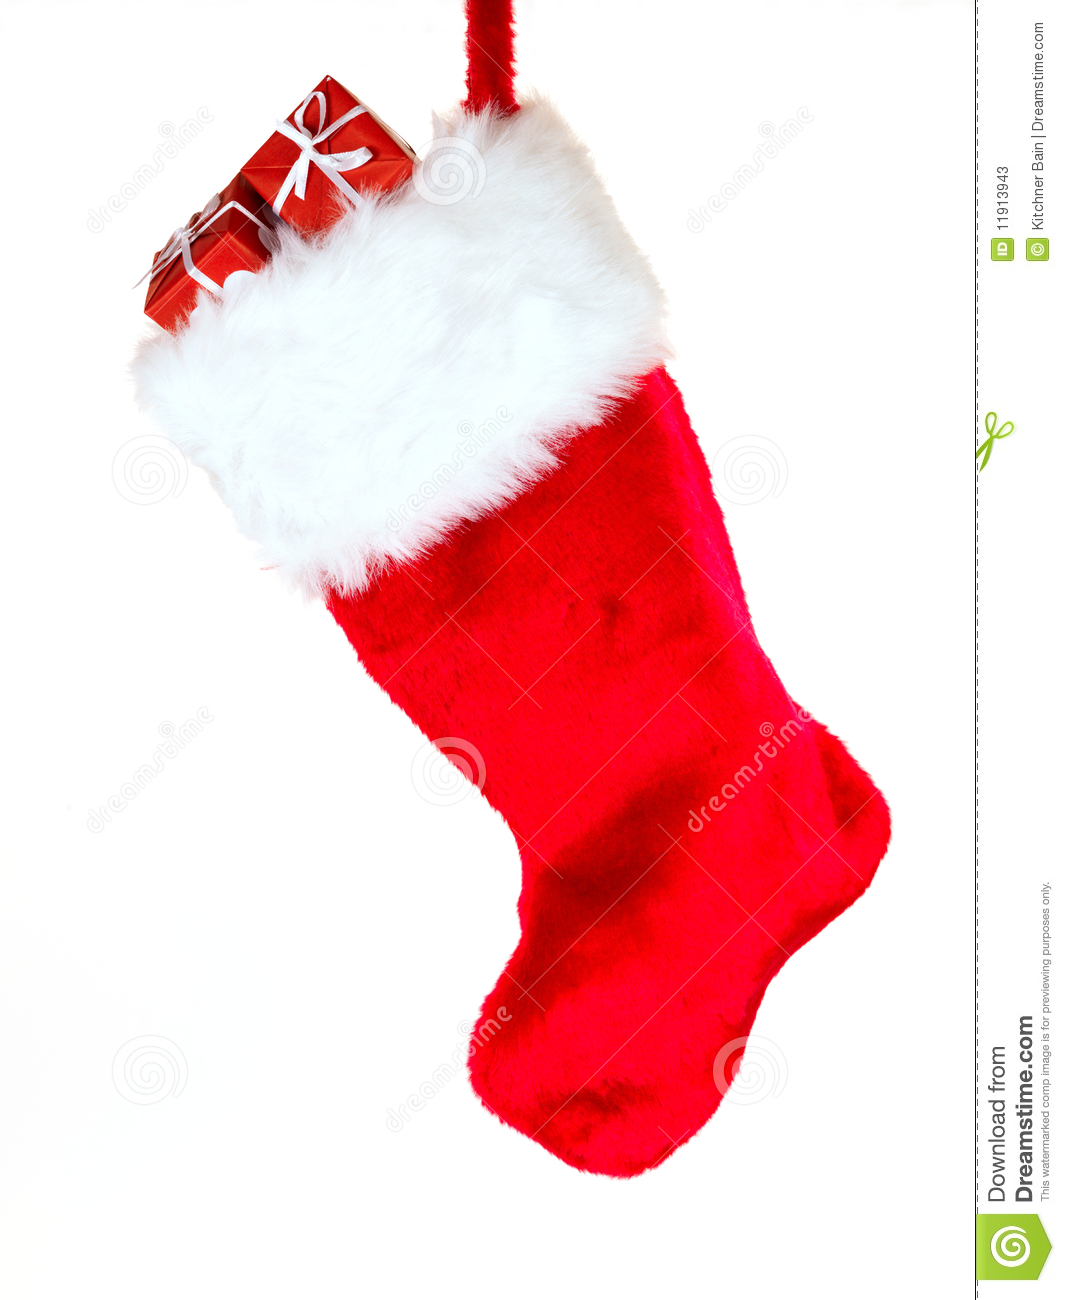 Free stocking thumbs